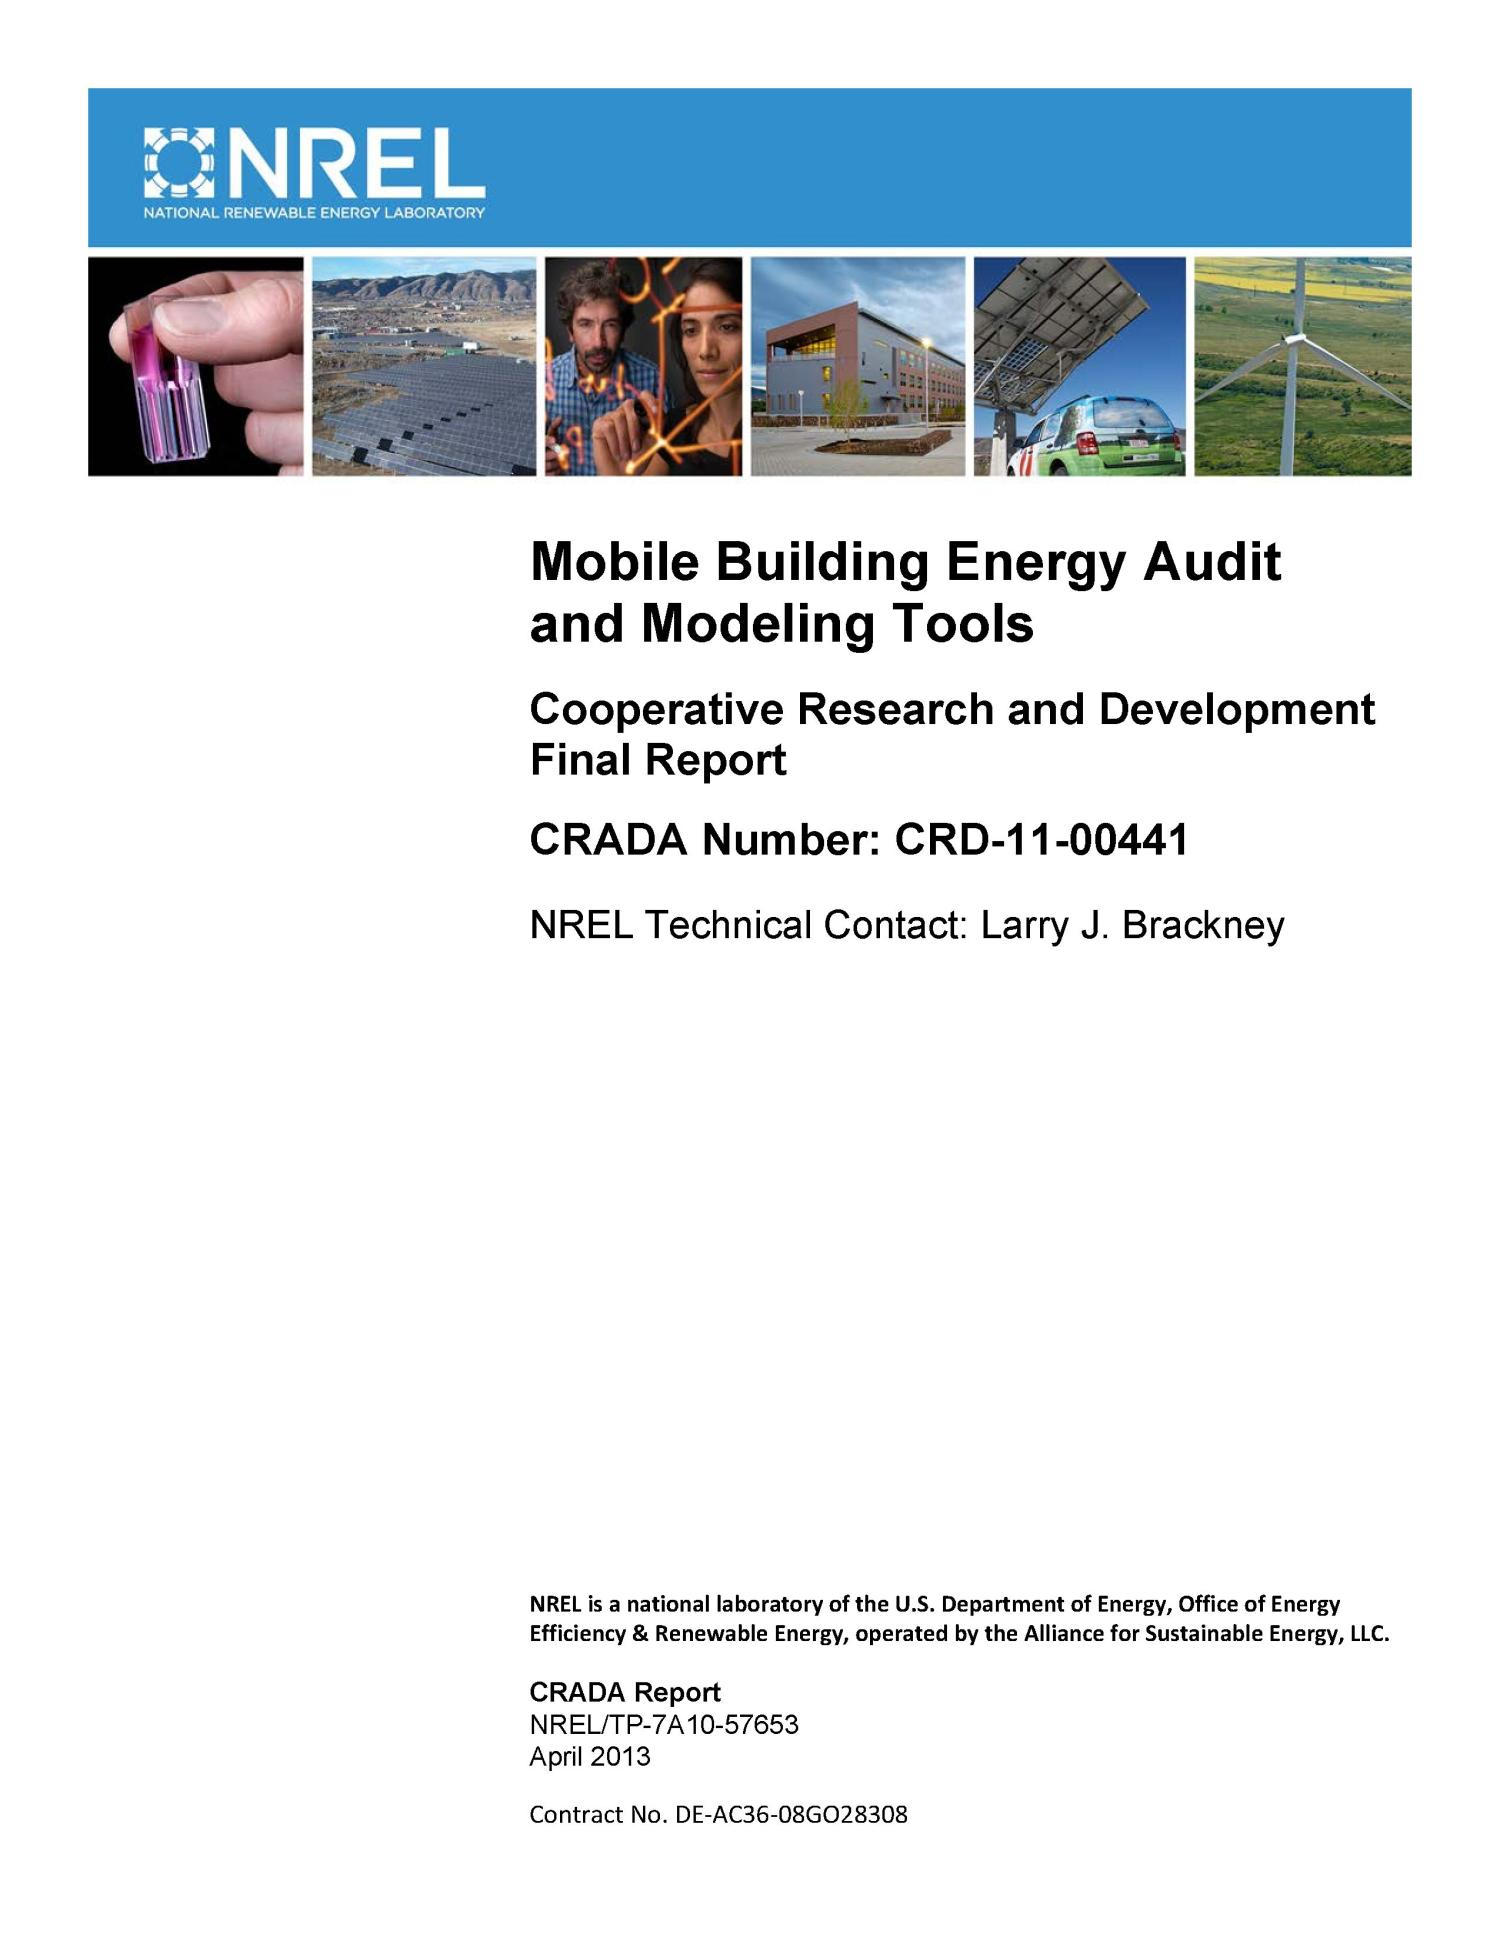 Mobile Building Energy Audit And Modeling Tools Cooperative Research And Development Final Report Crada Number Crd 11 00441 Unt Digital Library